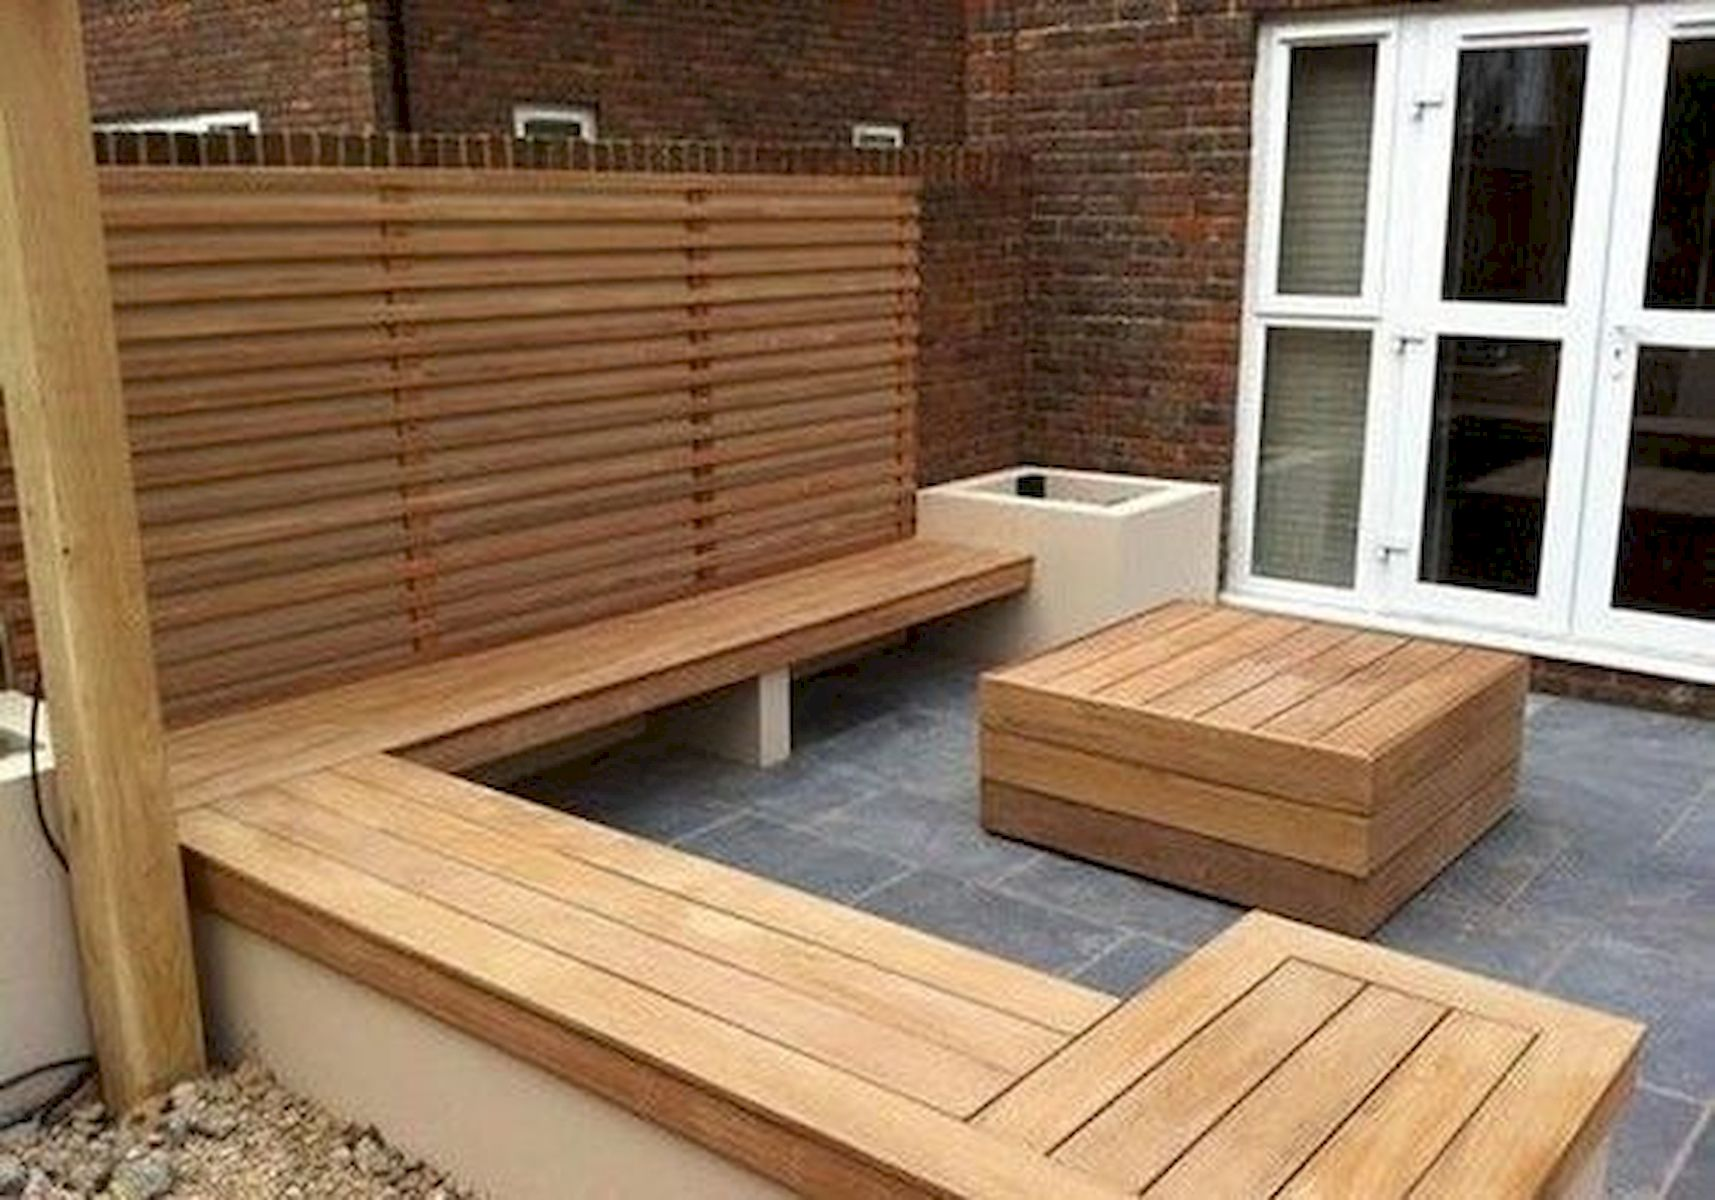 44 Amazing Backyard Seating Ideas To Make You Feel Relax (2)